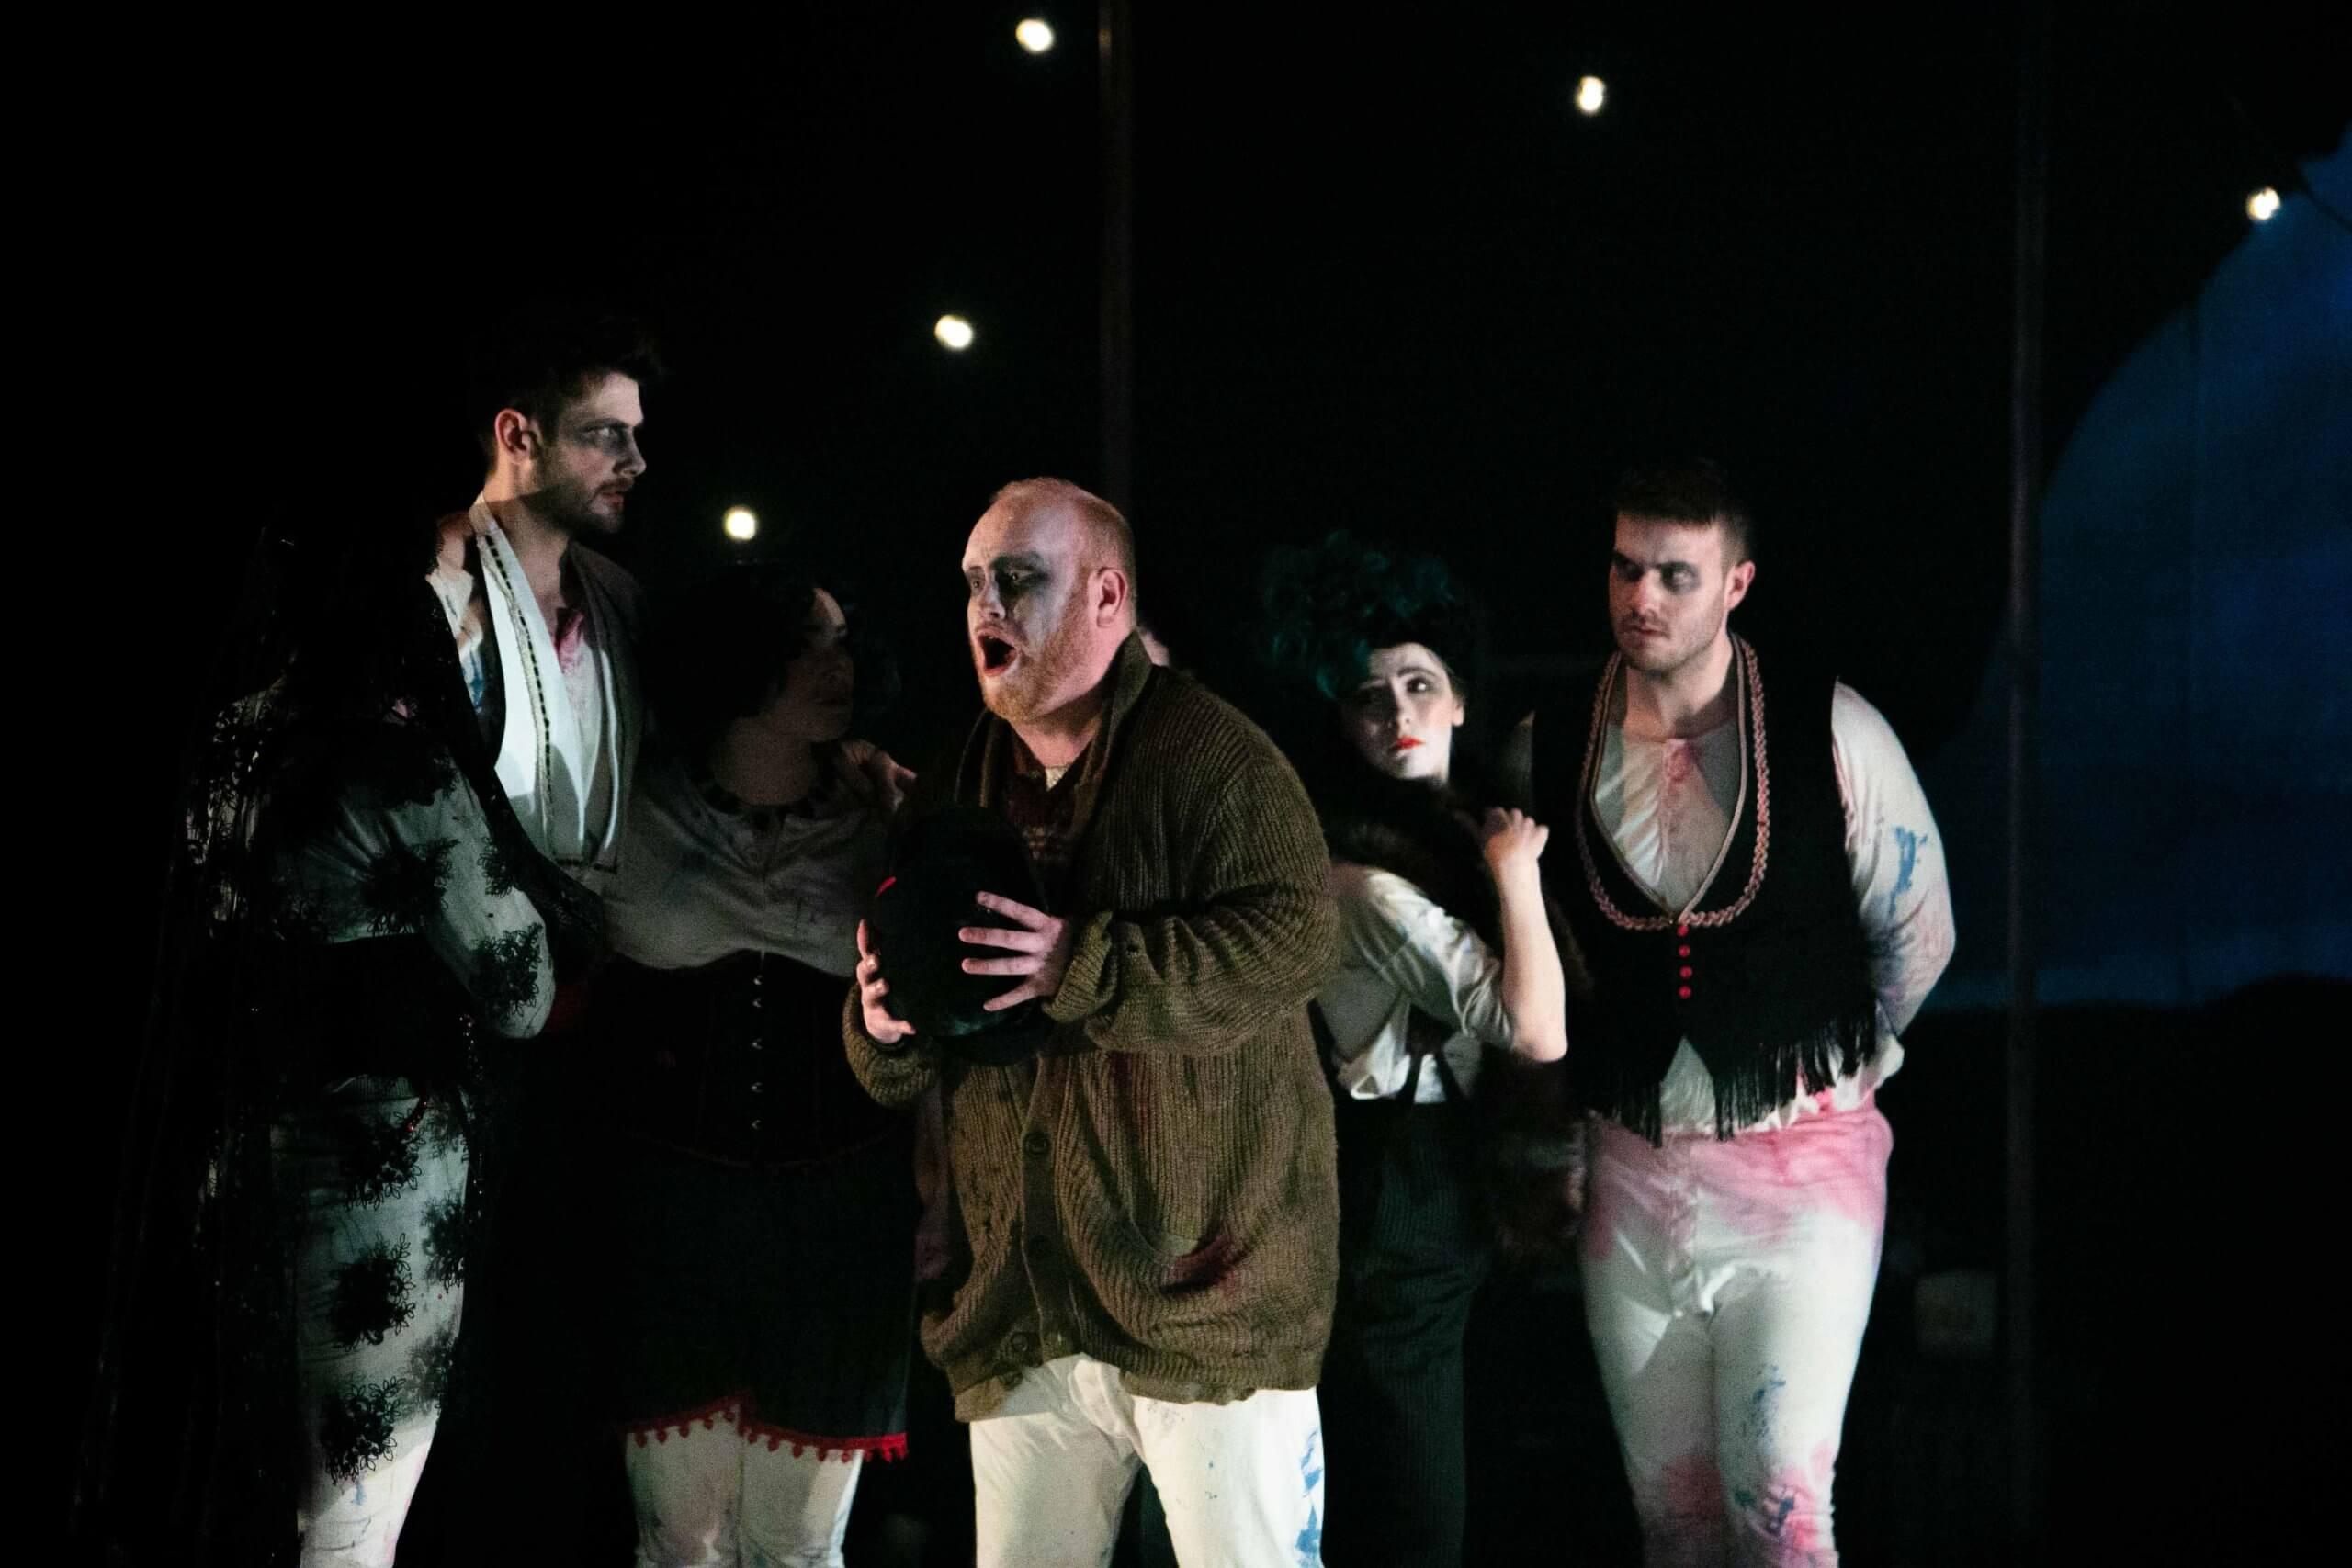 Opera student Tim Edmundson performs on stage in Gianni Schicchi